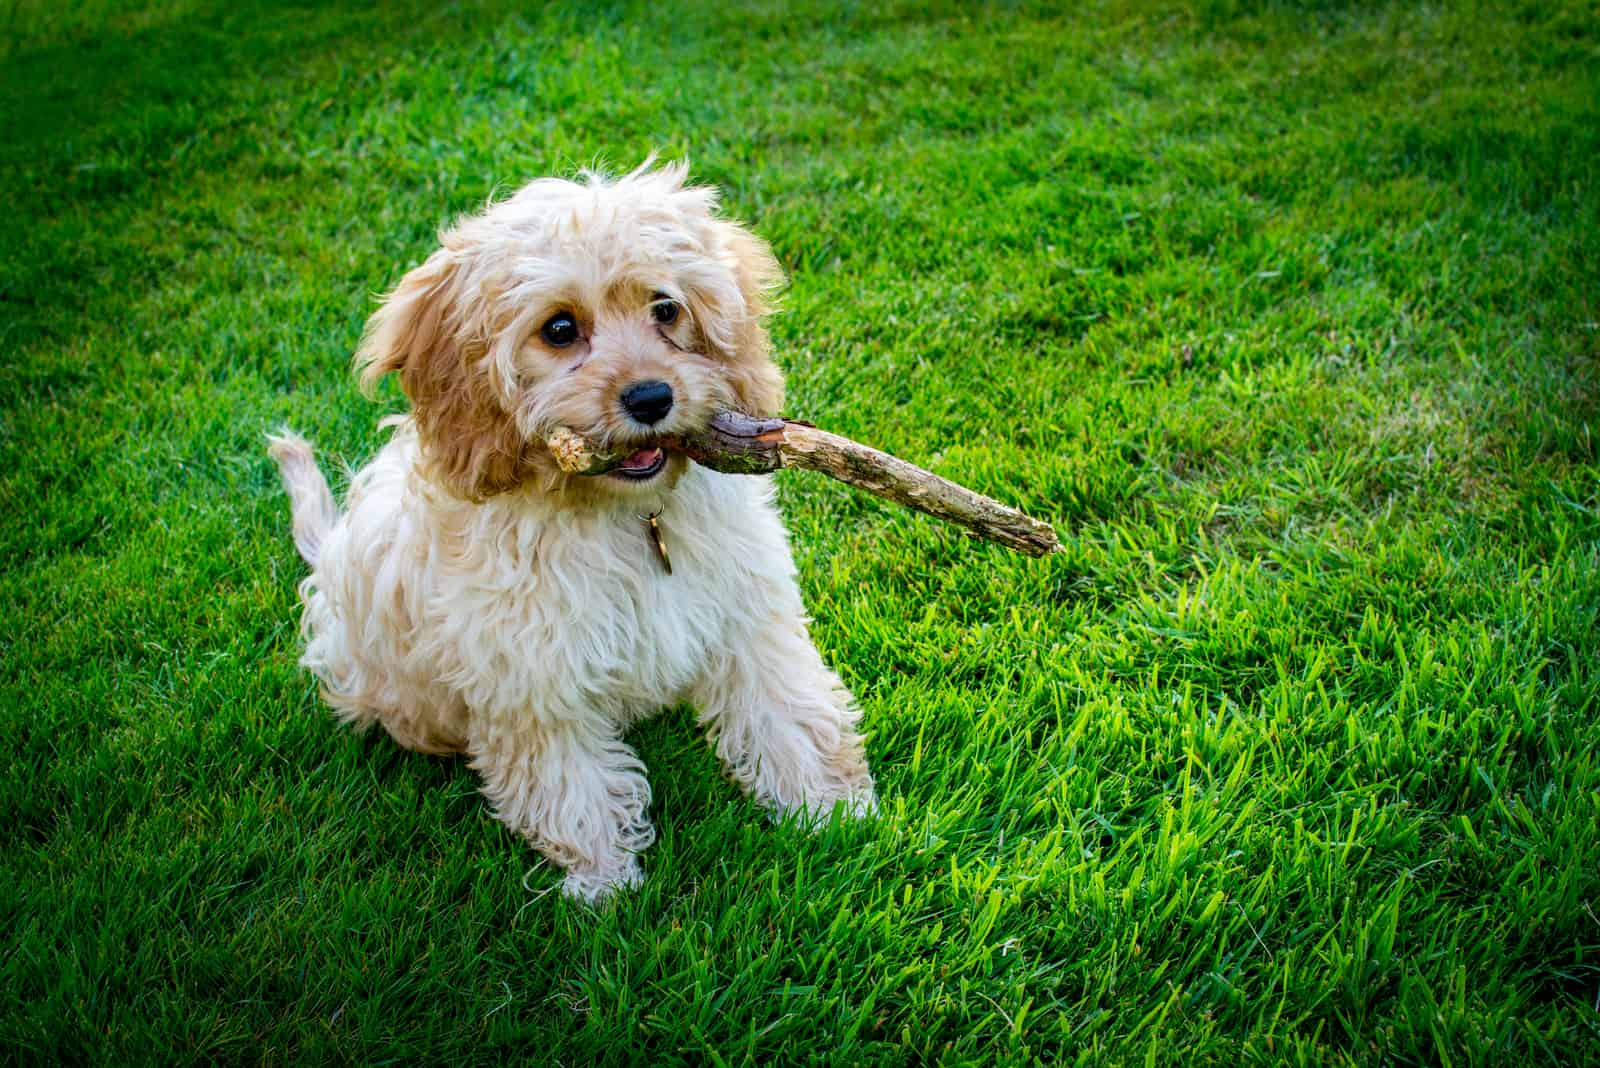 Cavapoo puppy with stick in his mouth